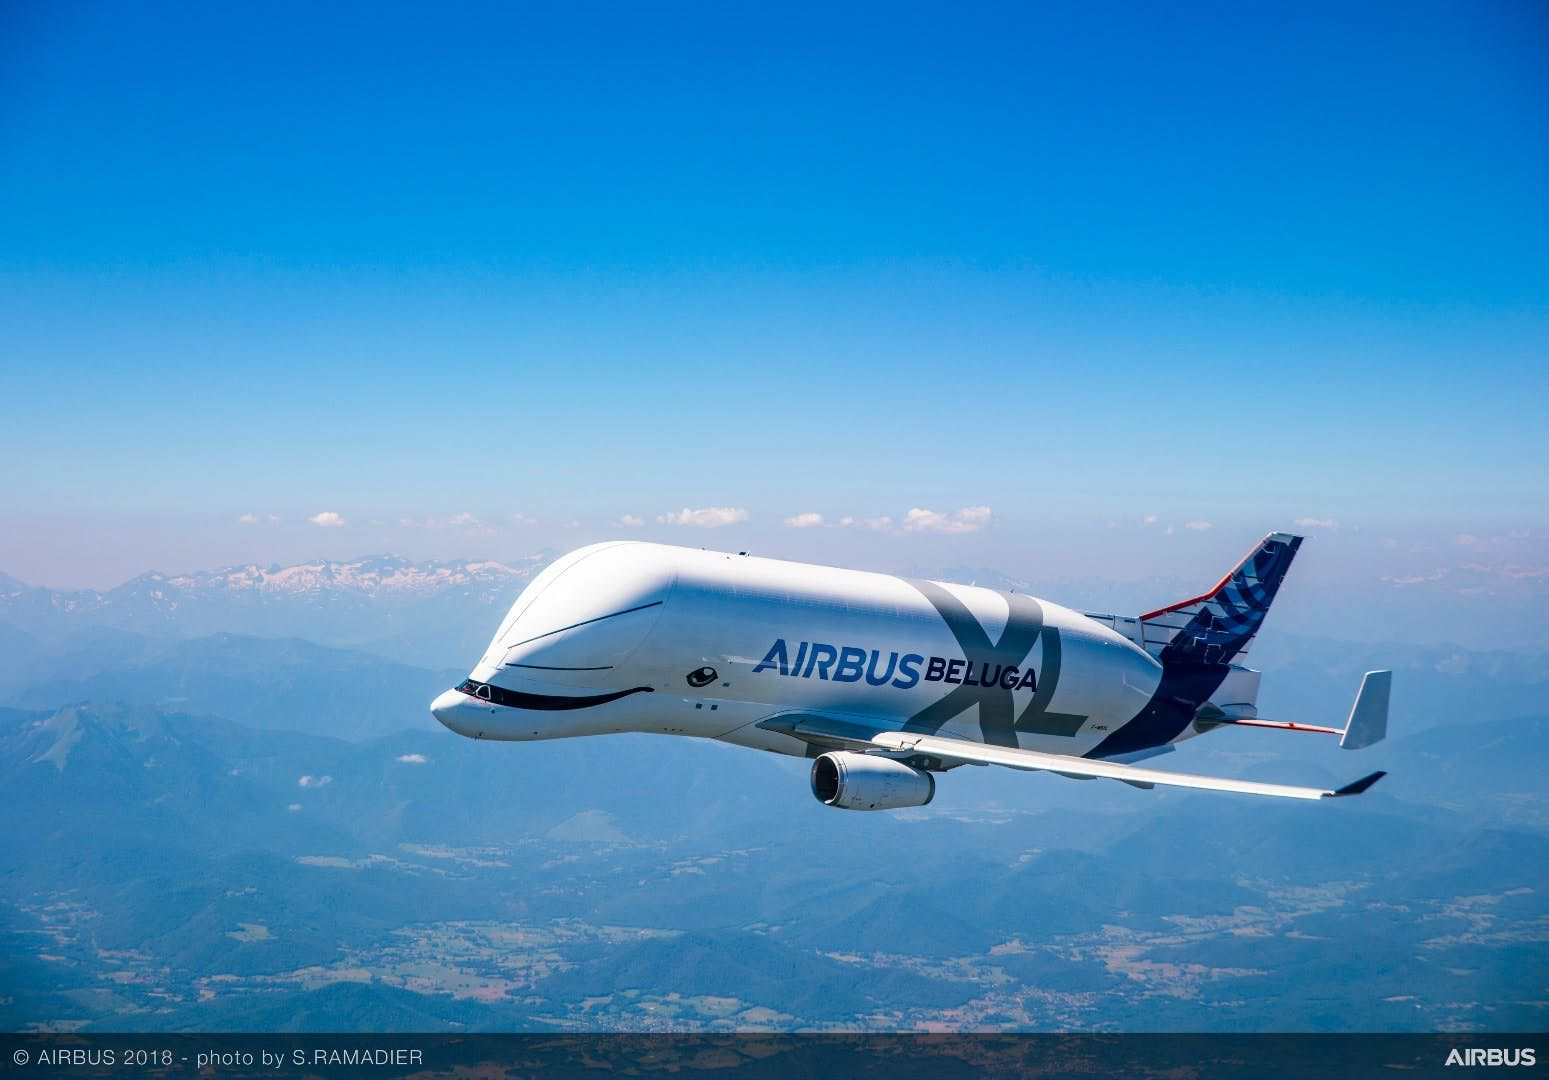 Flying Whale Airbus Belugaxl Takes Flight Whale Cargo Aircraft